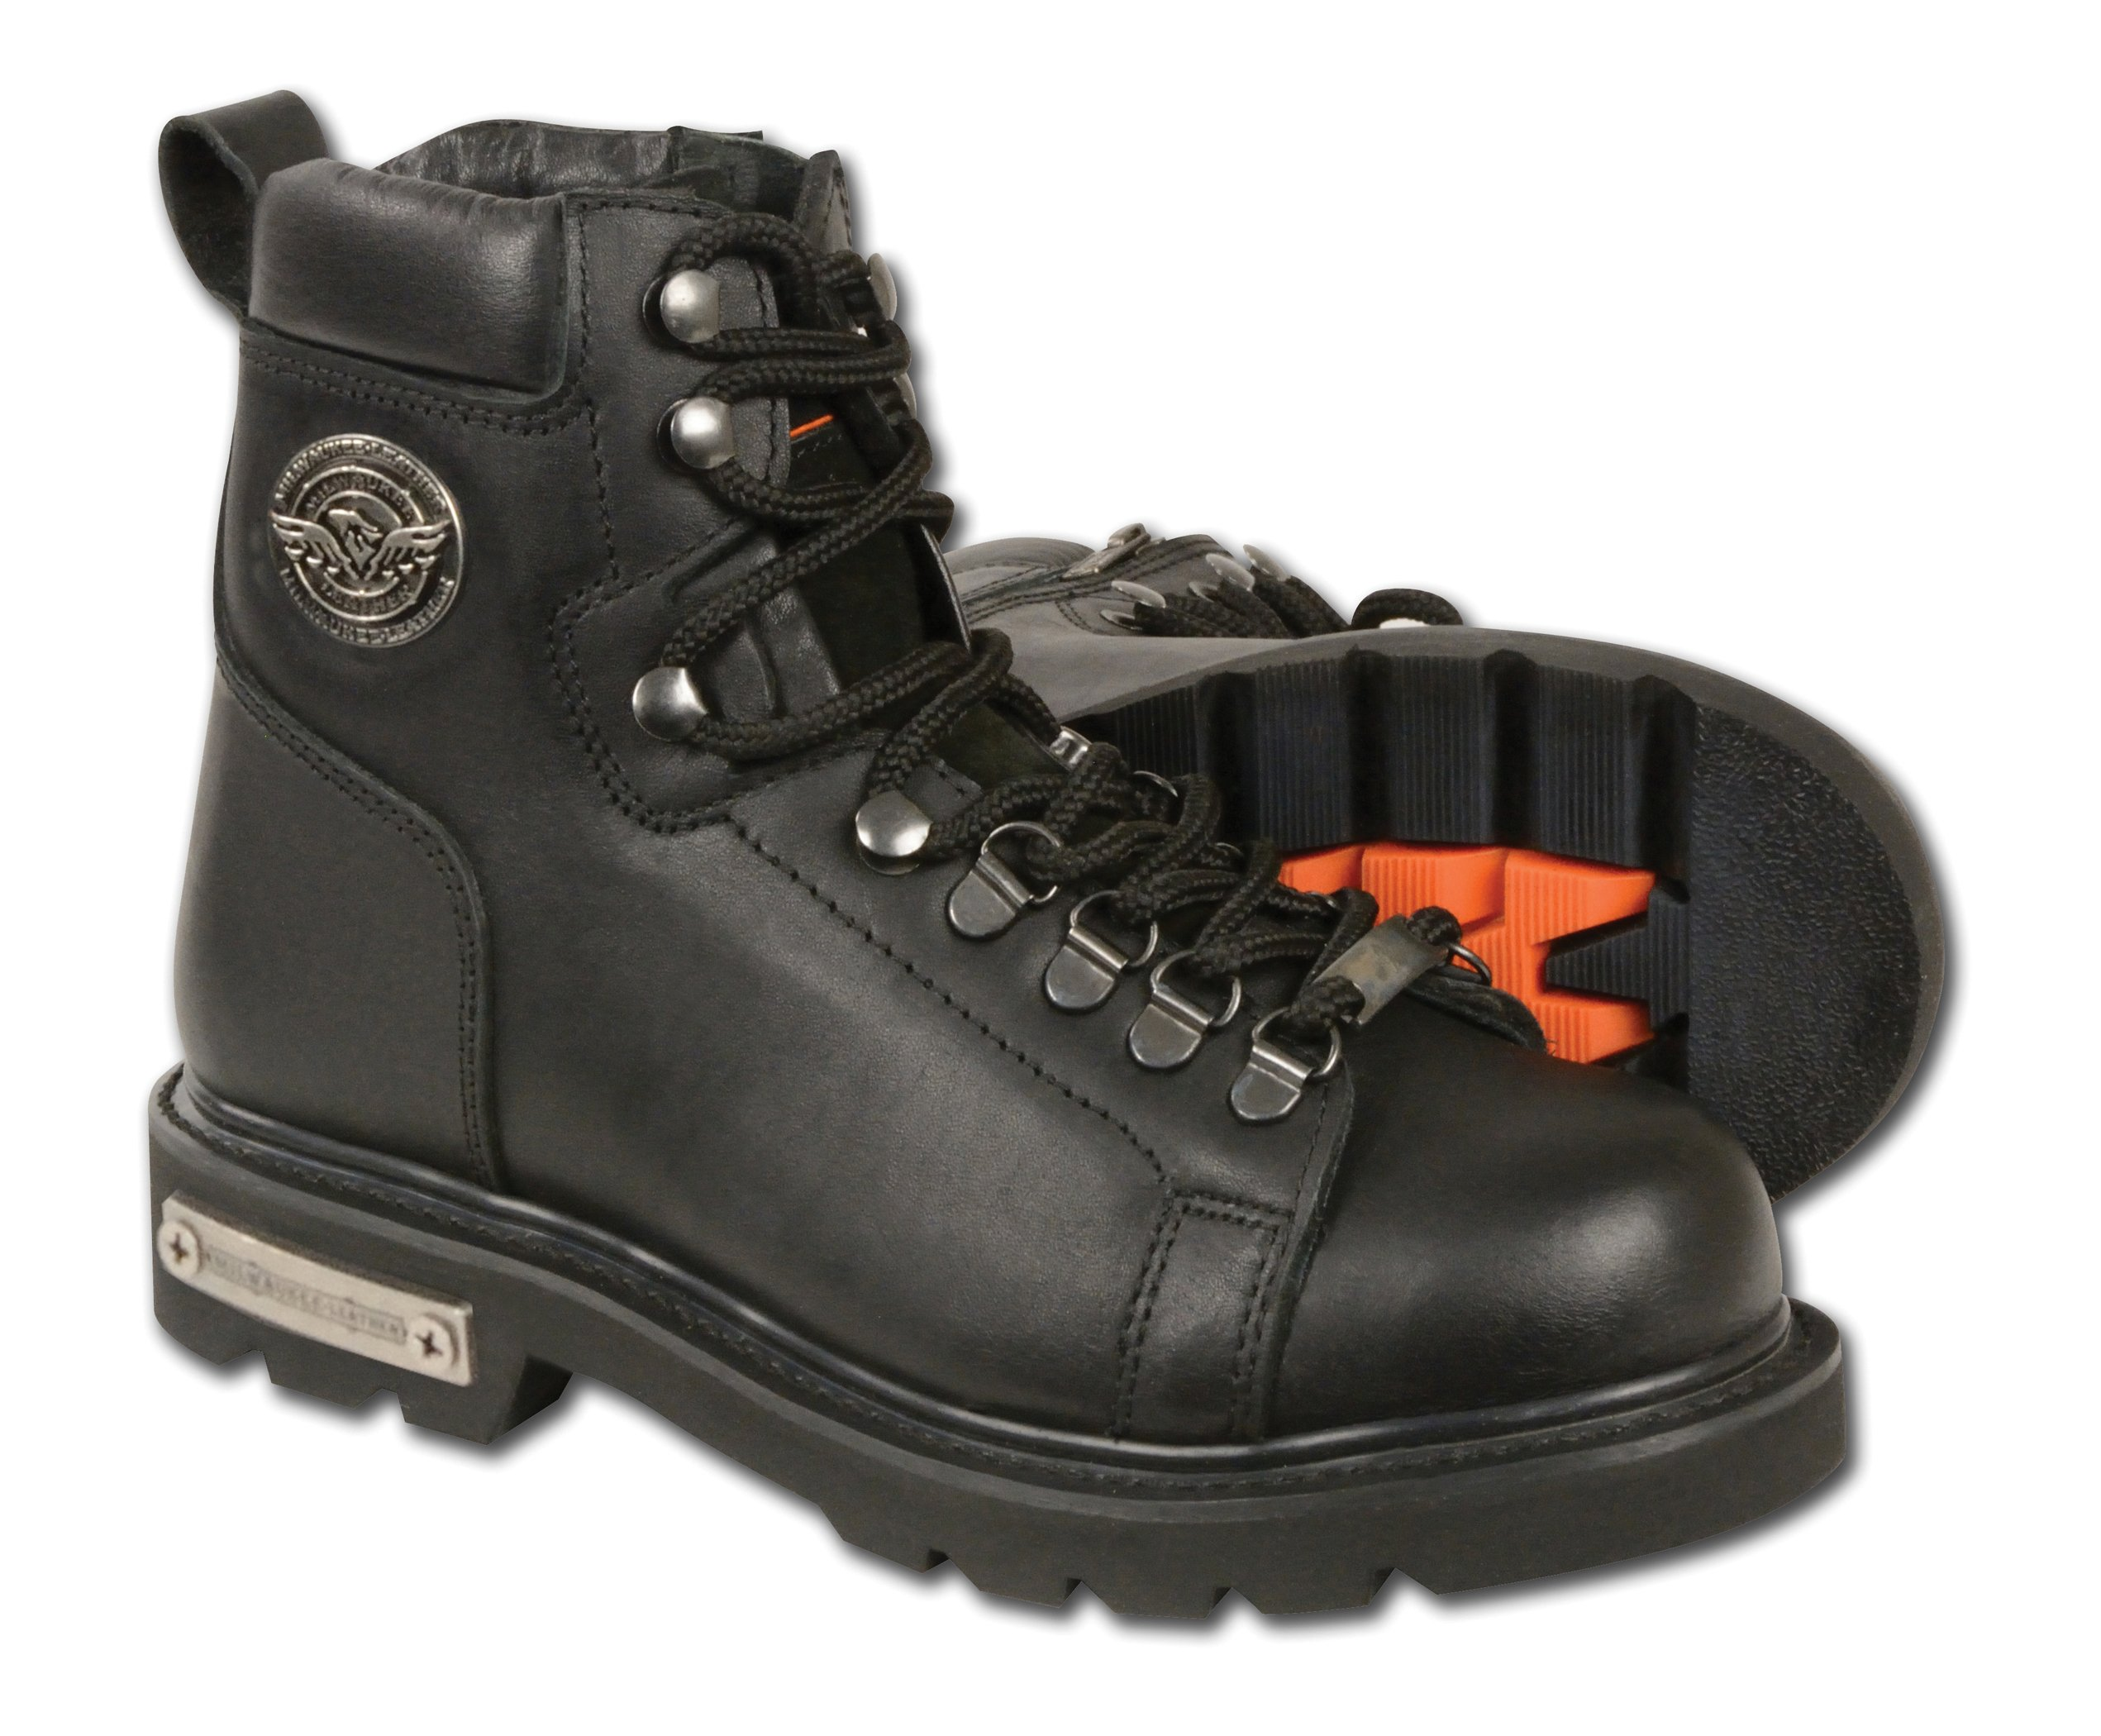 Milwaukee Leather Women's Classic Motorcycle Boots (Black, Size 6.5)